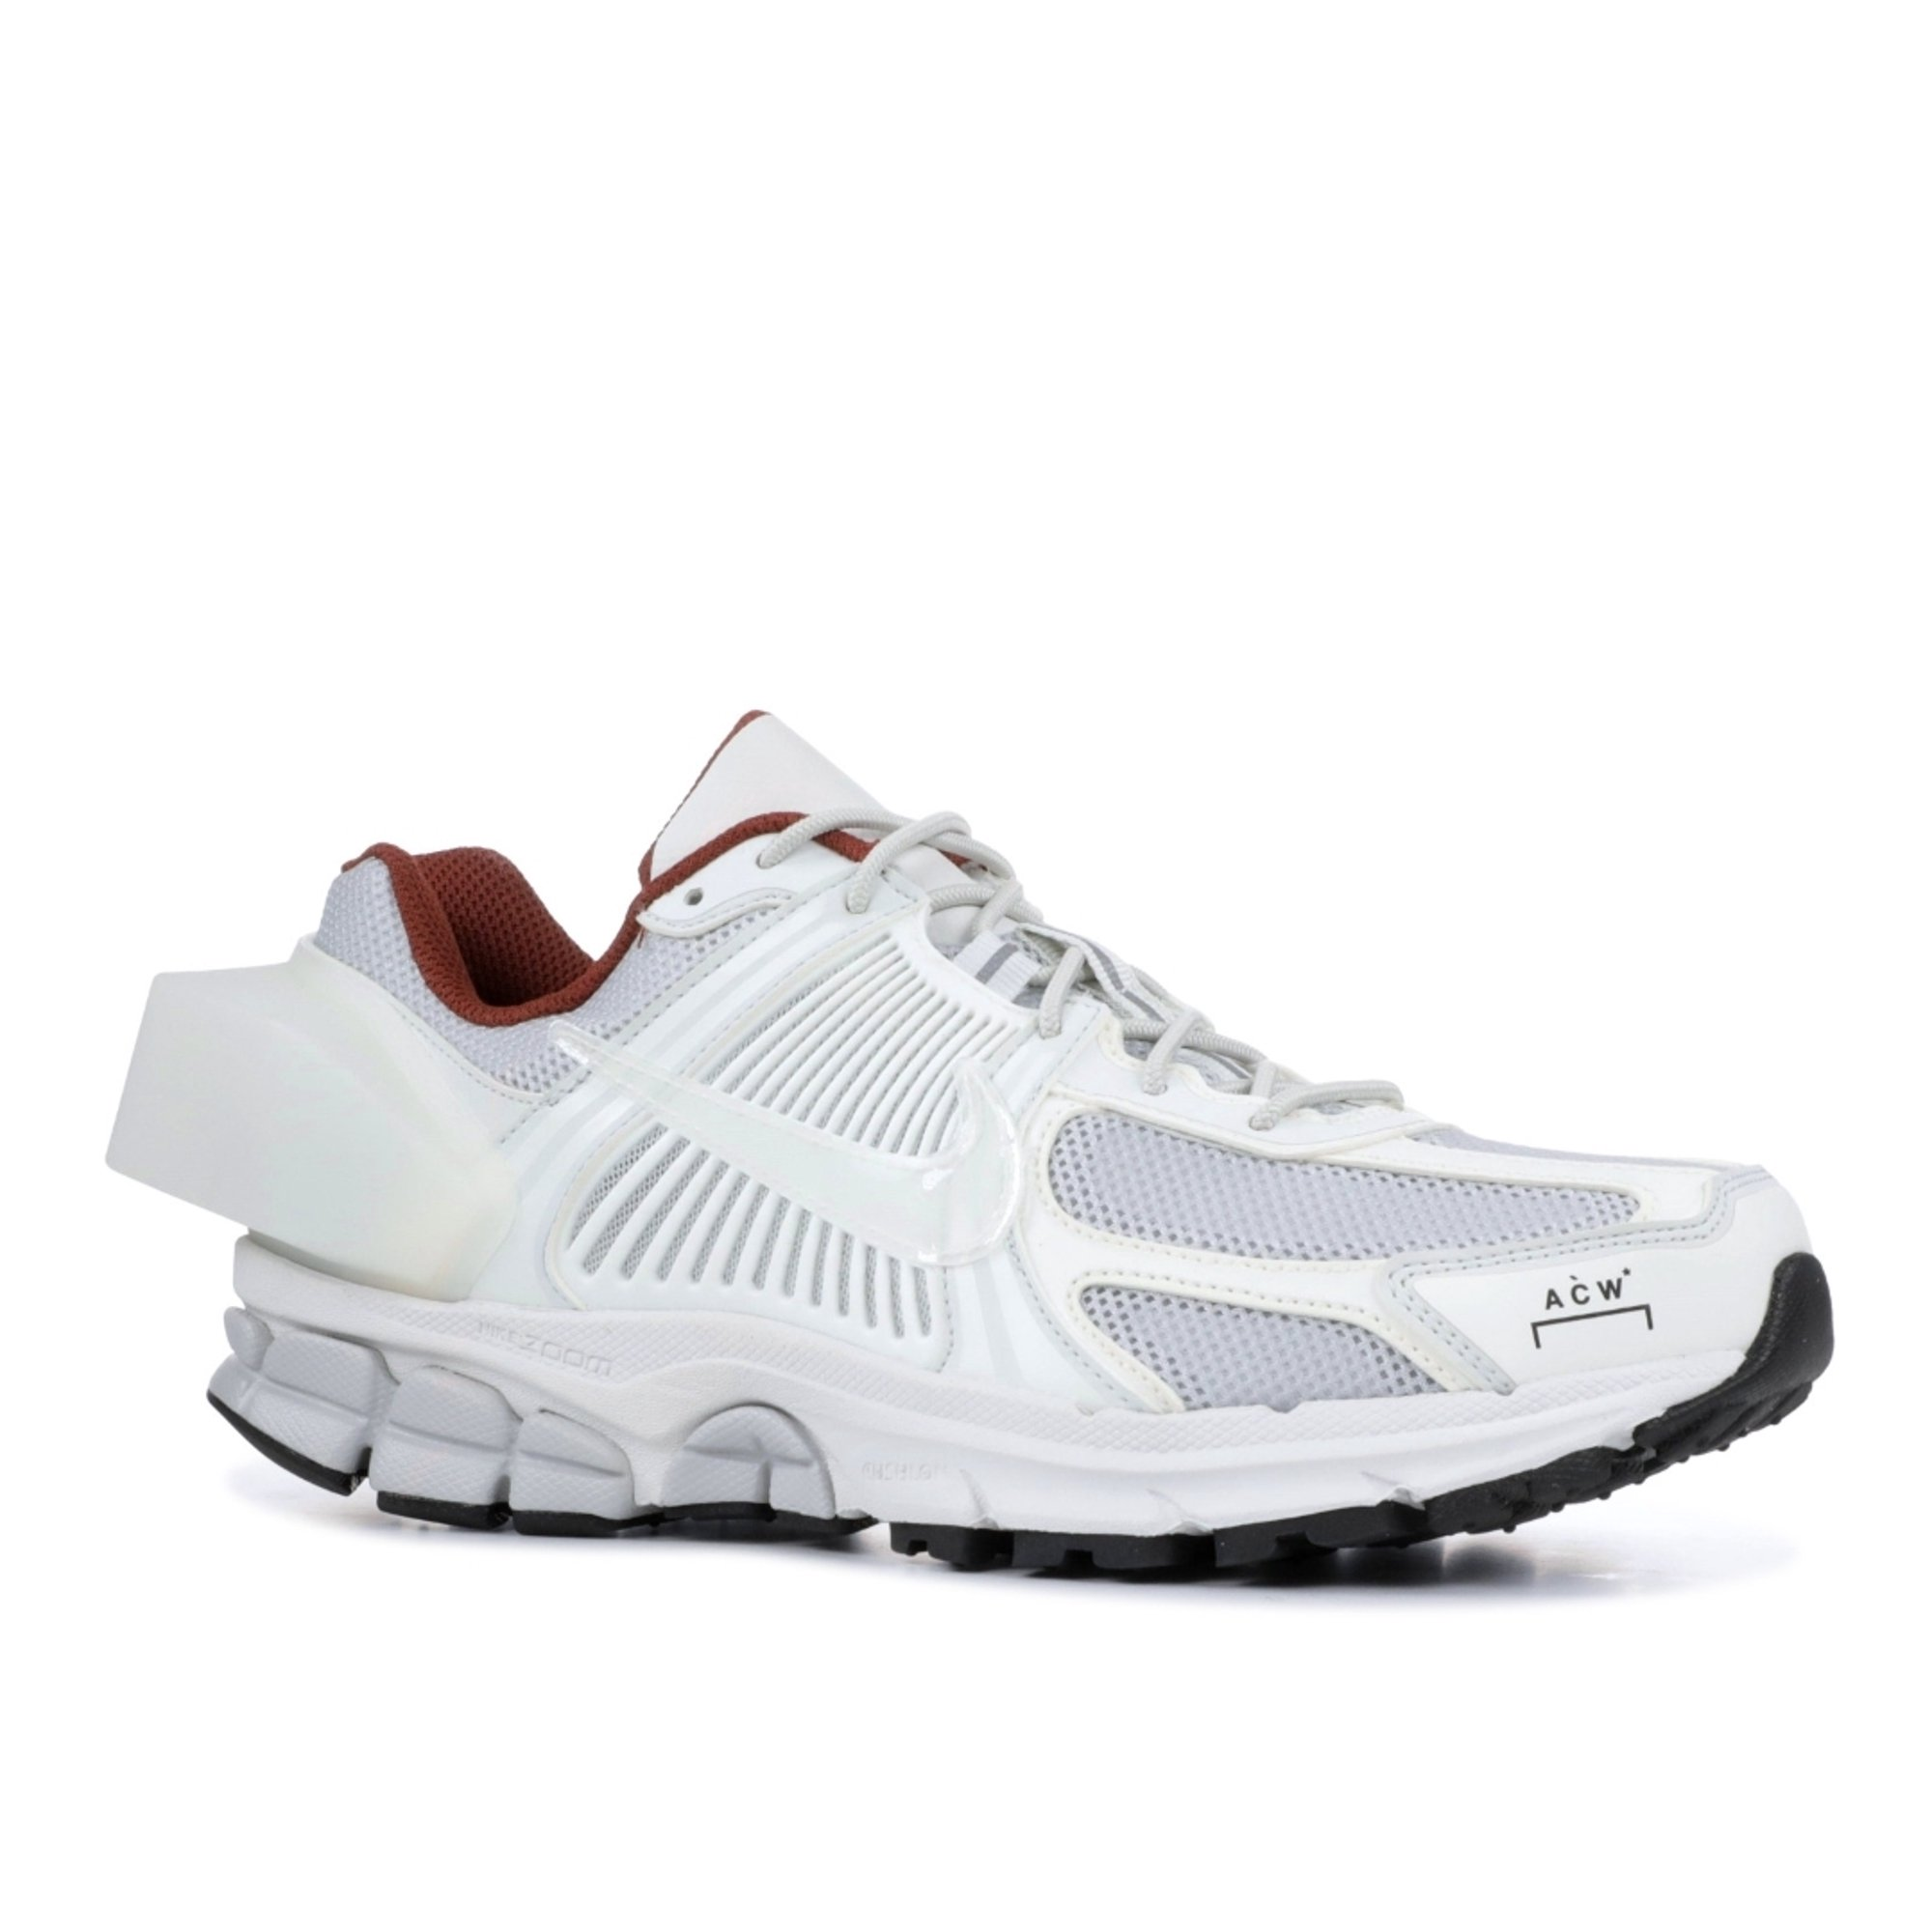 the latest 35e56 6c951 Nike - Men - Nike Zoom Vomero 5/Acw 'A-Cold-Wall' - At3152-100 - Size 11